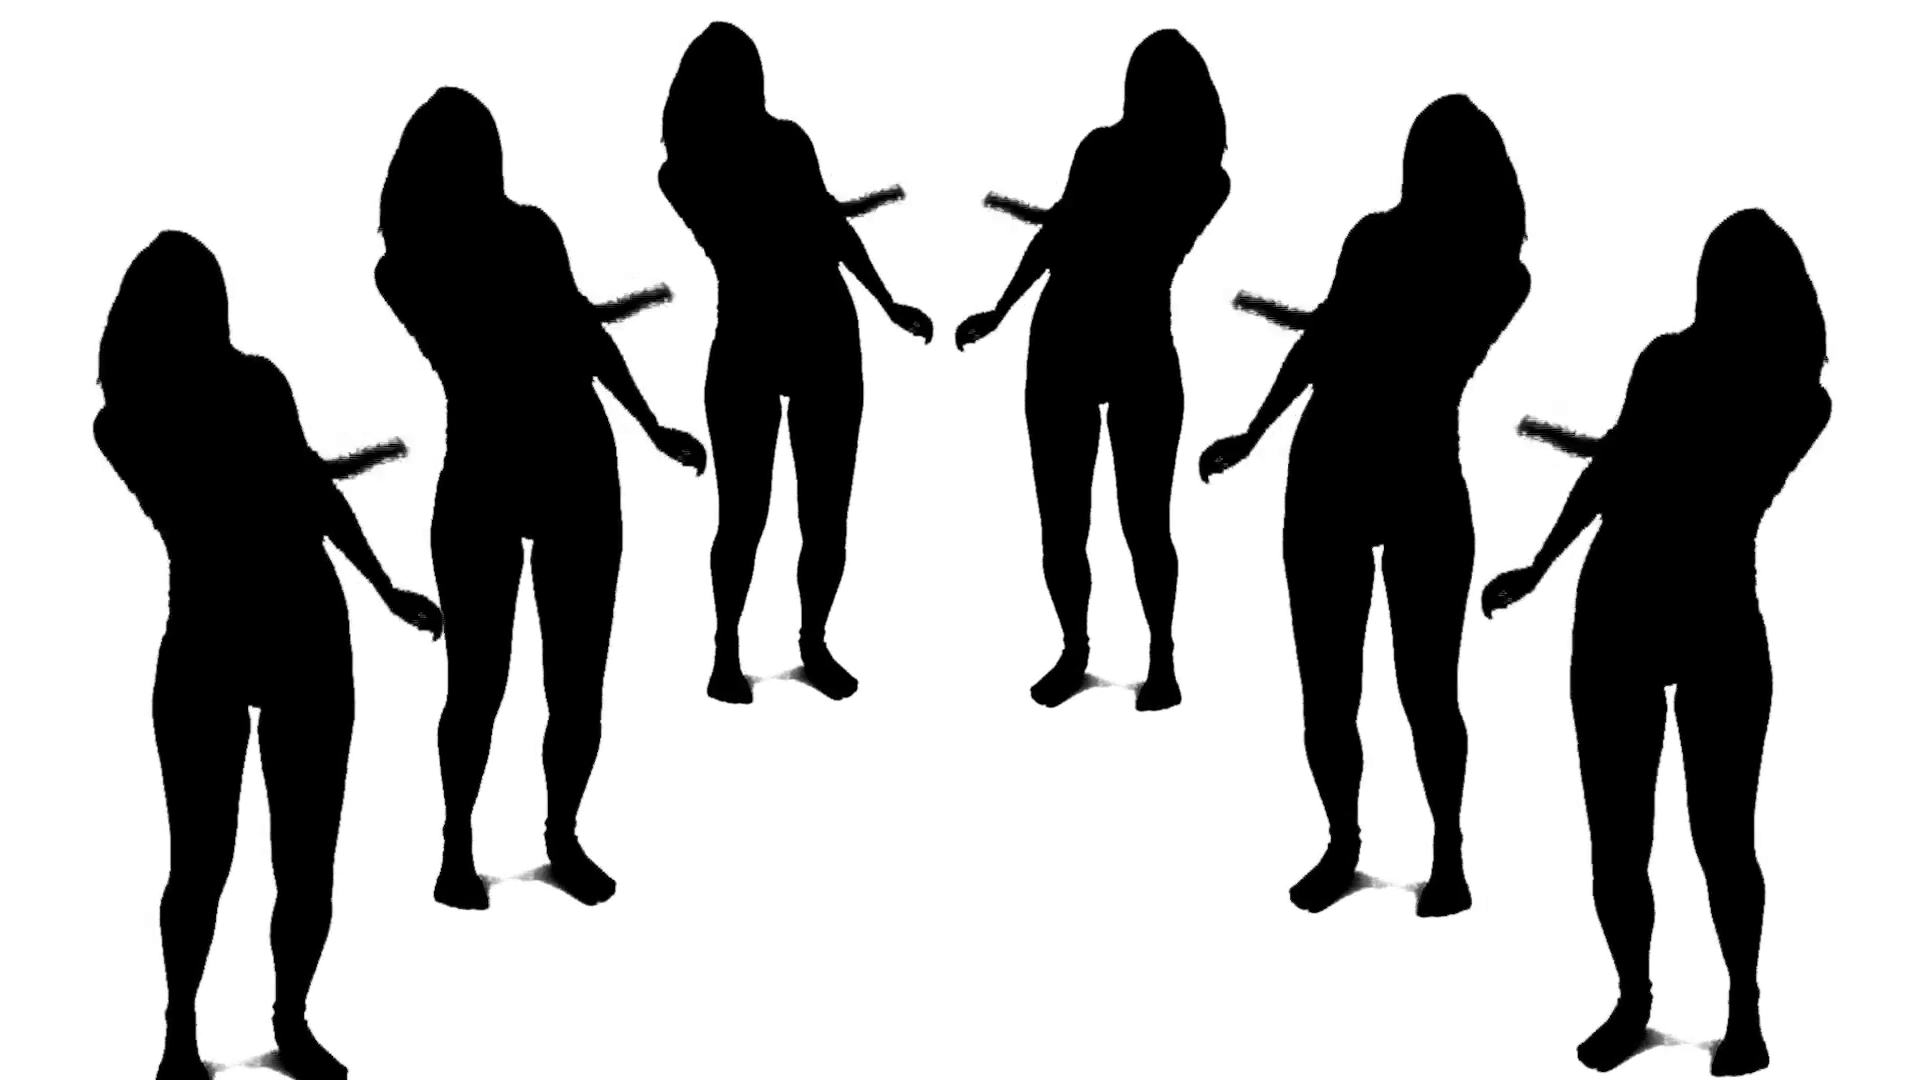 1920x1080 Dolly Out People Silhouettes On White Background Motion Background